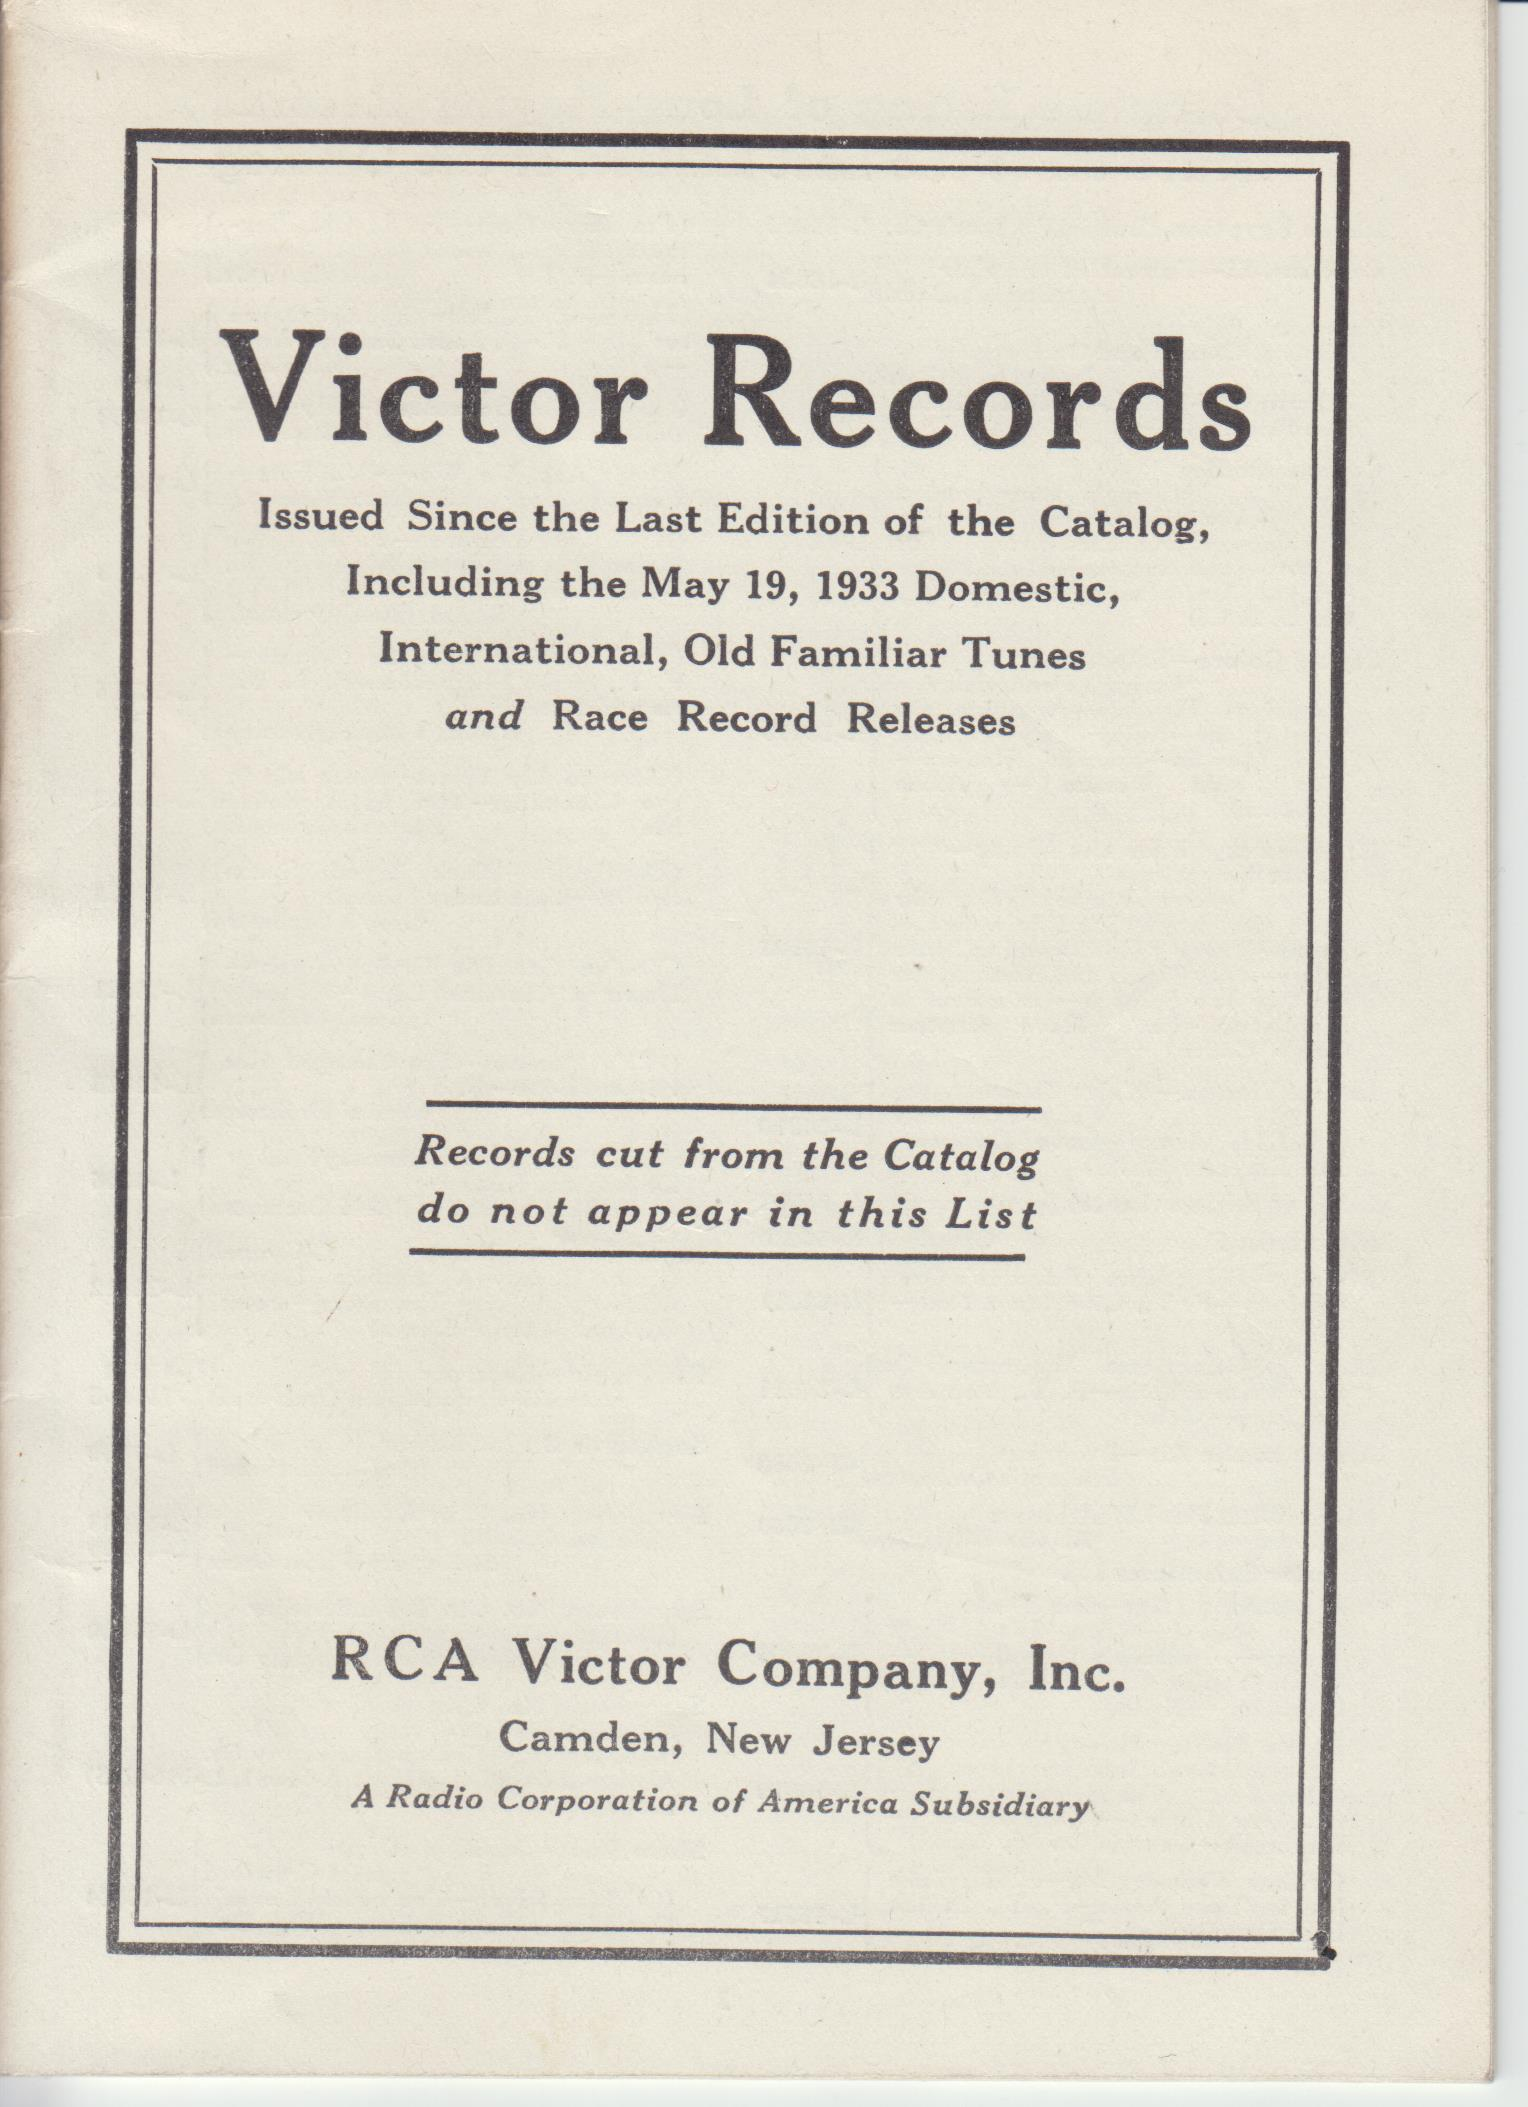 Image for Victor Records Issued Since the Last Edition of the Catalog, including the May 19, 1933 Domestic, International, Old Familiar Tunes and Race Record Releases